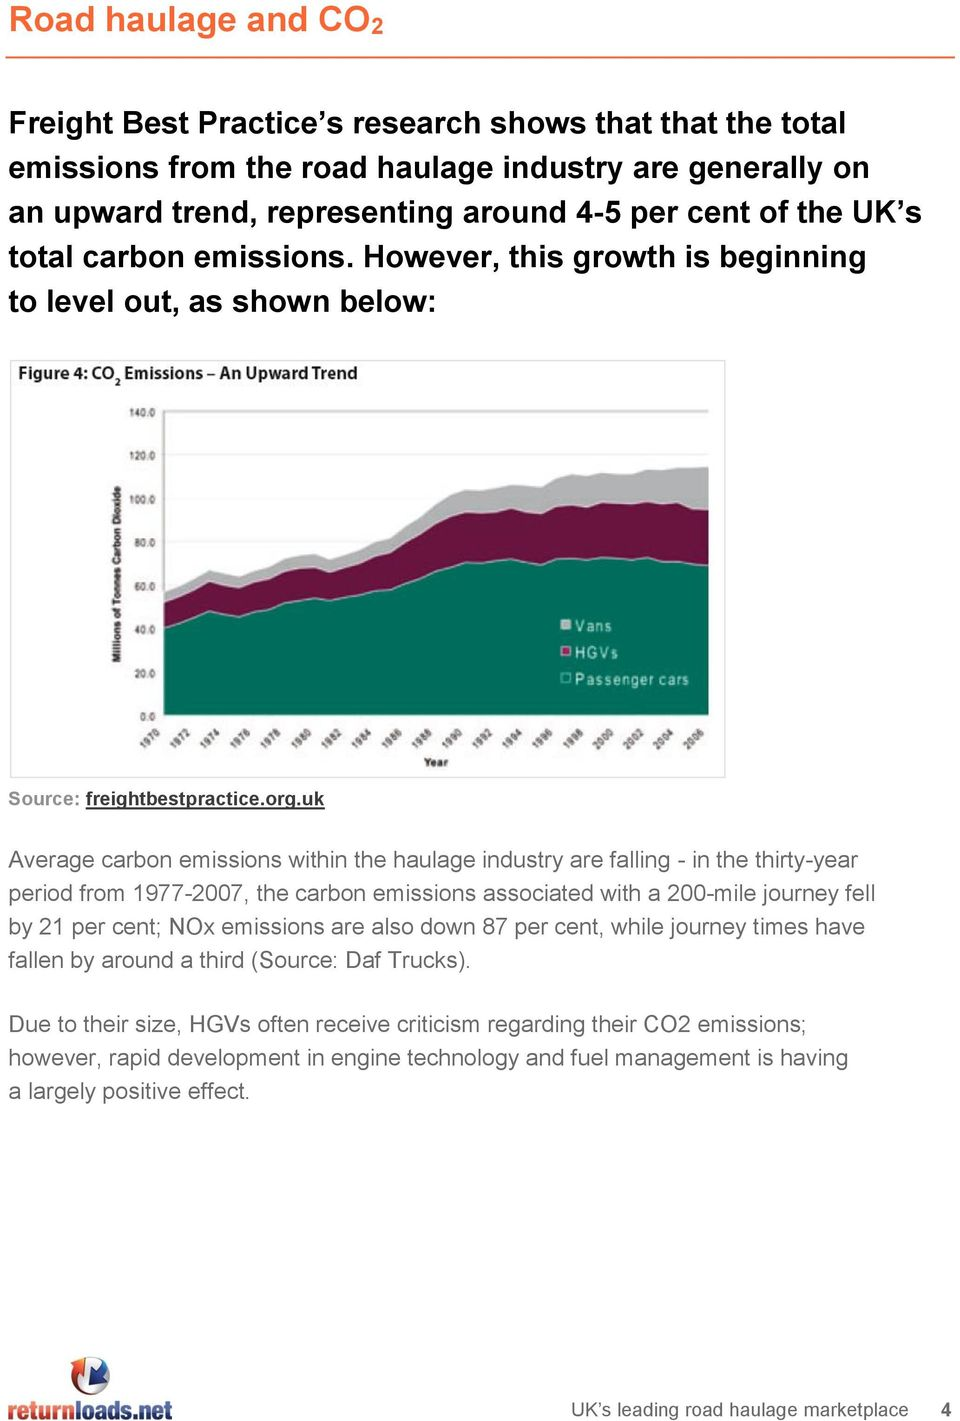 uk Average carbon emissions within the haulage industry are falling - in the thirty-year period from 1977-2007, the carbon emissions associated with a 200-mile journey fell by 21 per cent; NOx